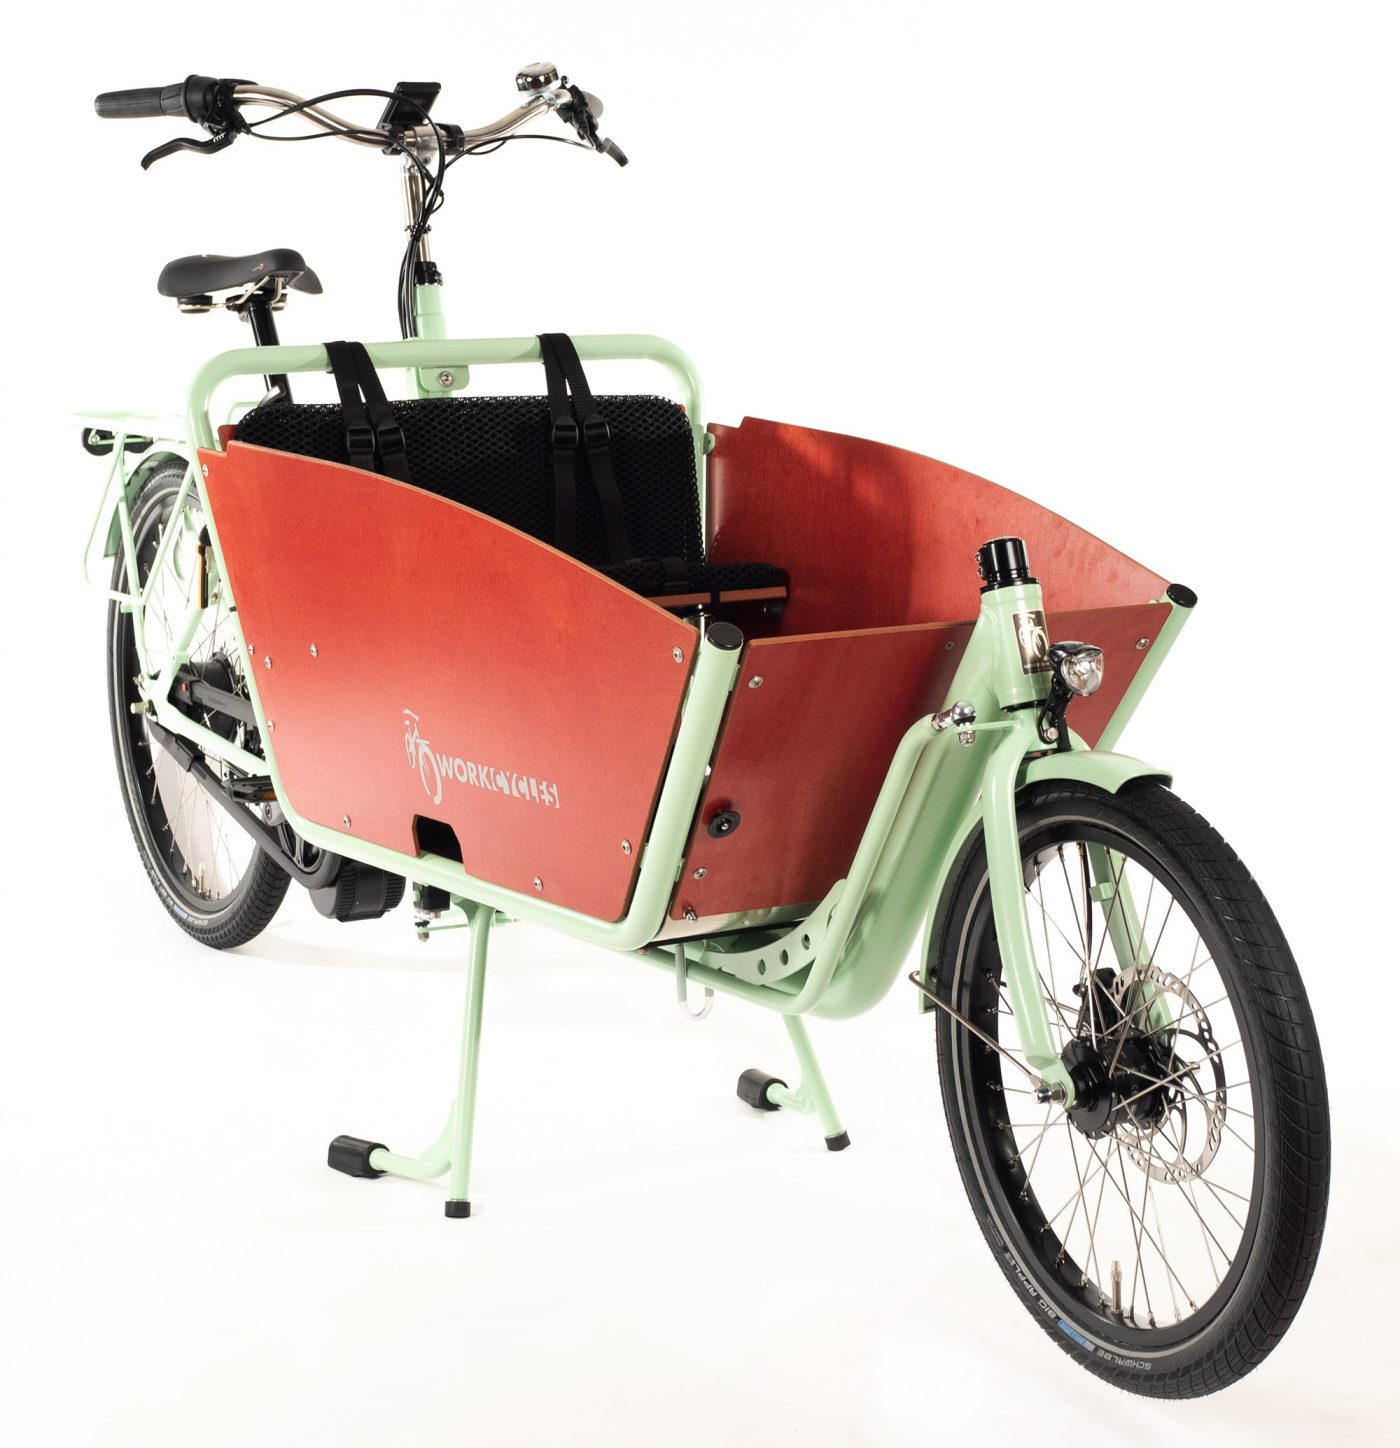 WorkCycles Kr8 MAD bakfiets, child transport bike, dutch e bikes